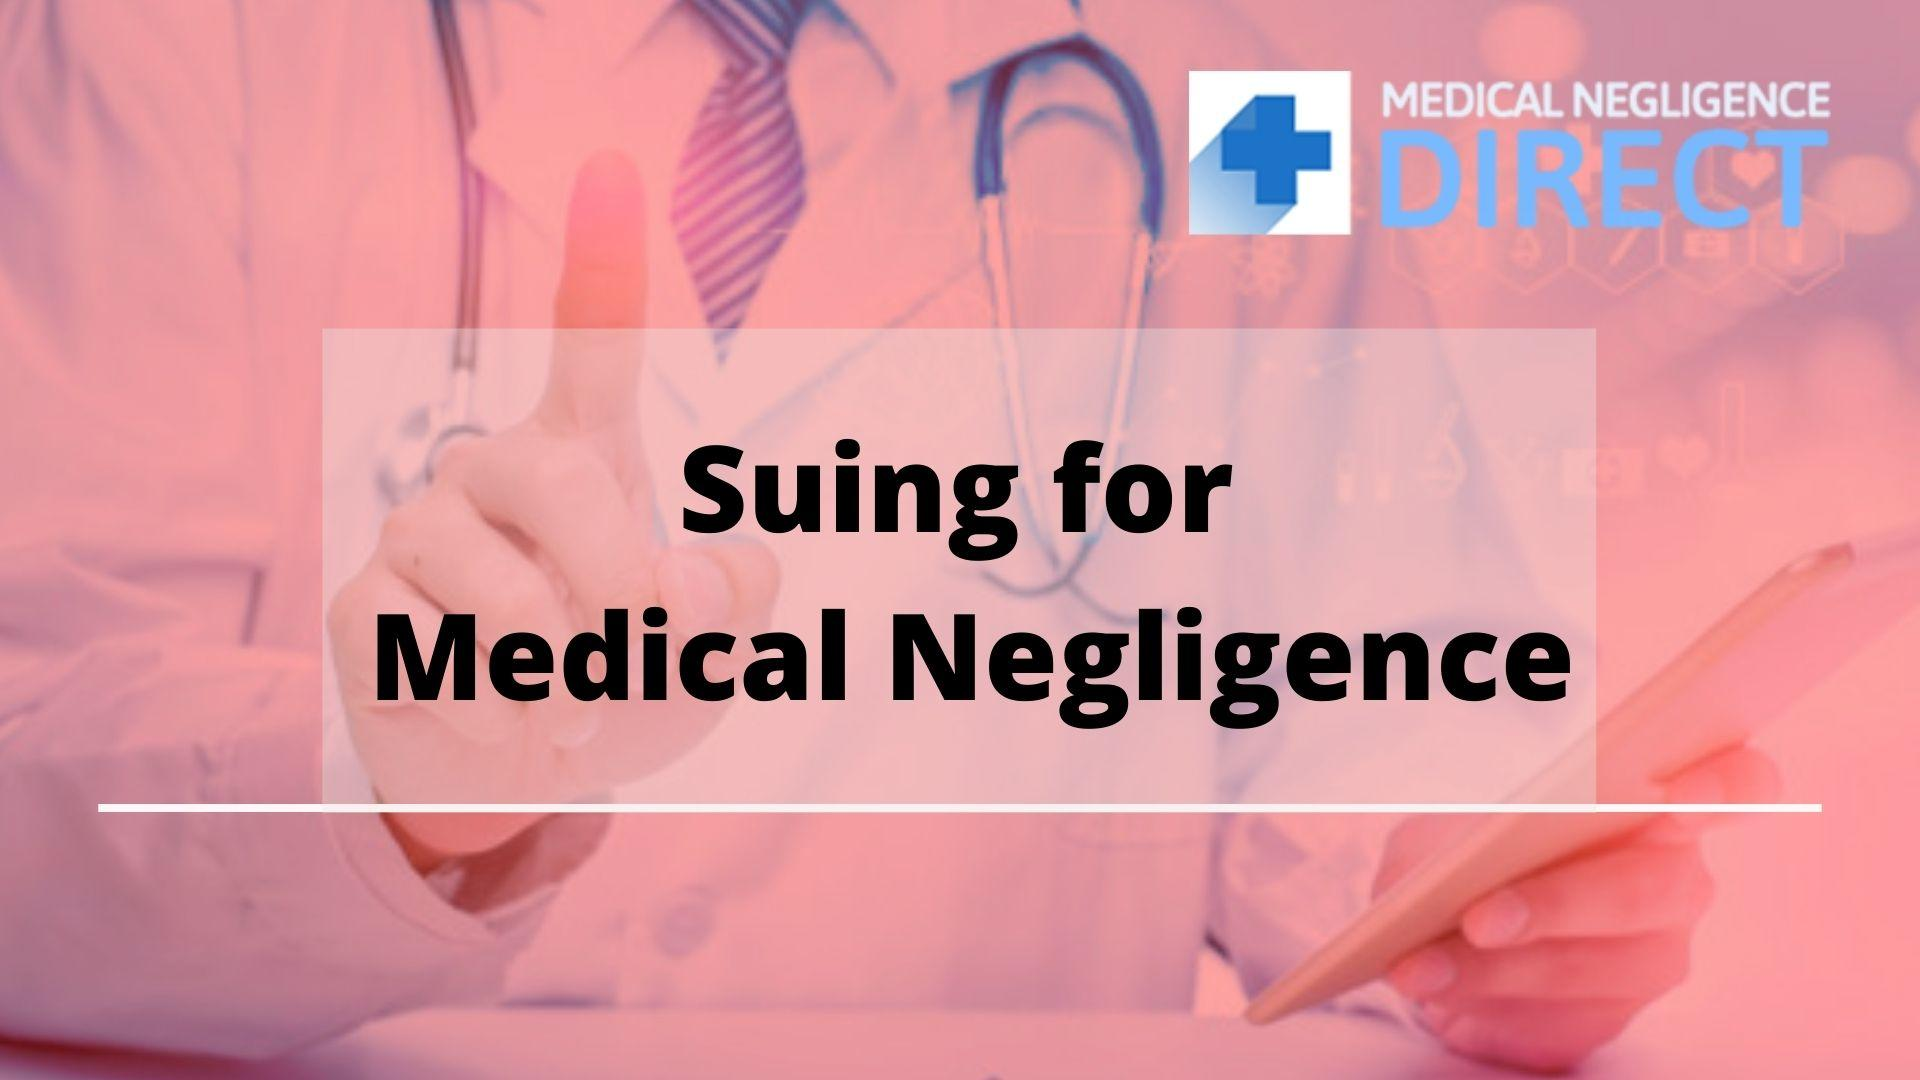 Image - Medical Negligence occurs due to substandard treatment or care by the doctor or Nurse & the patient has to fa...